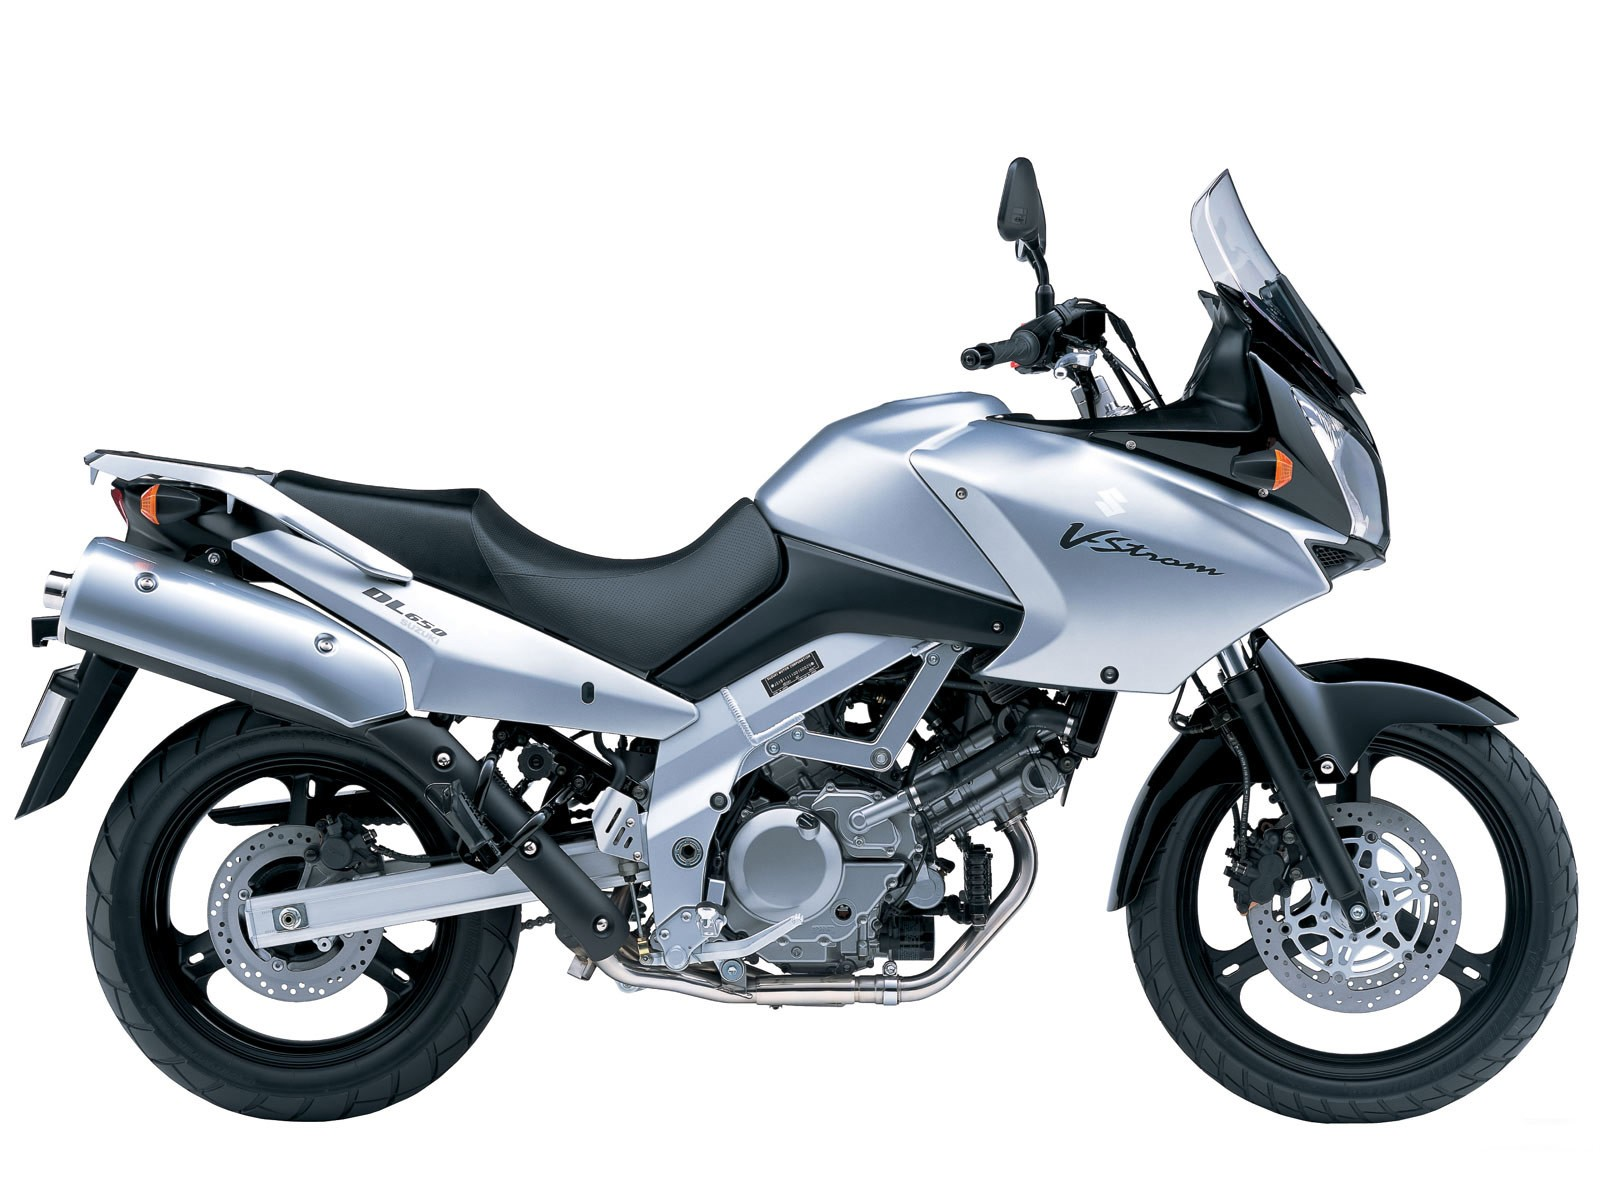 2004 Suzuki DL650 V-Strom Service Manual